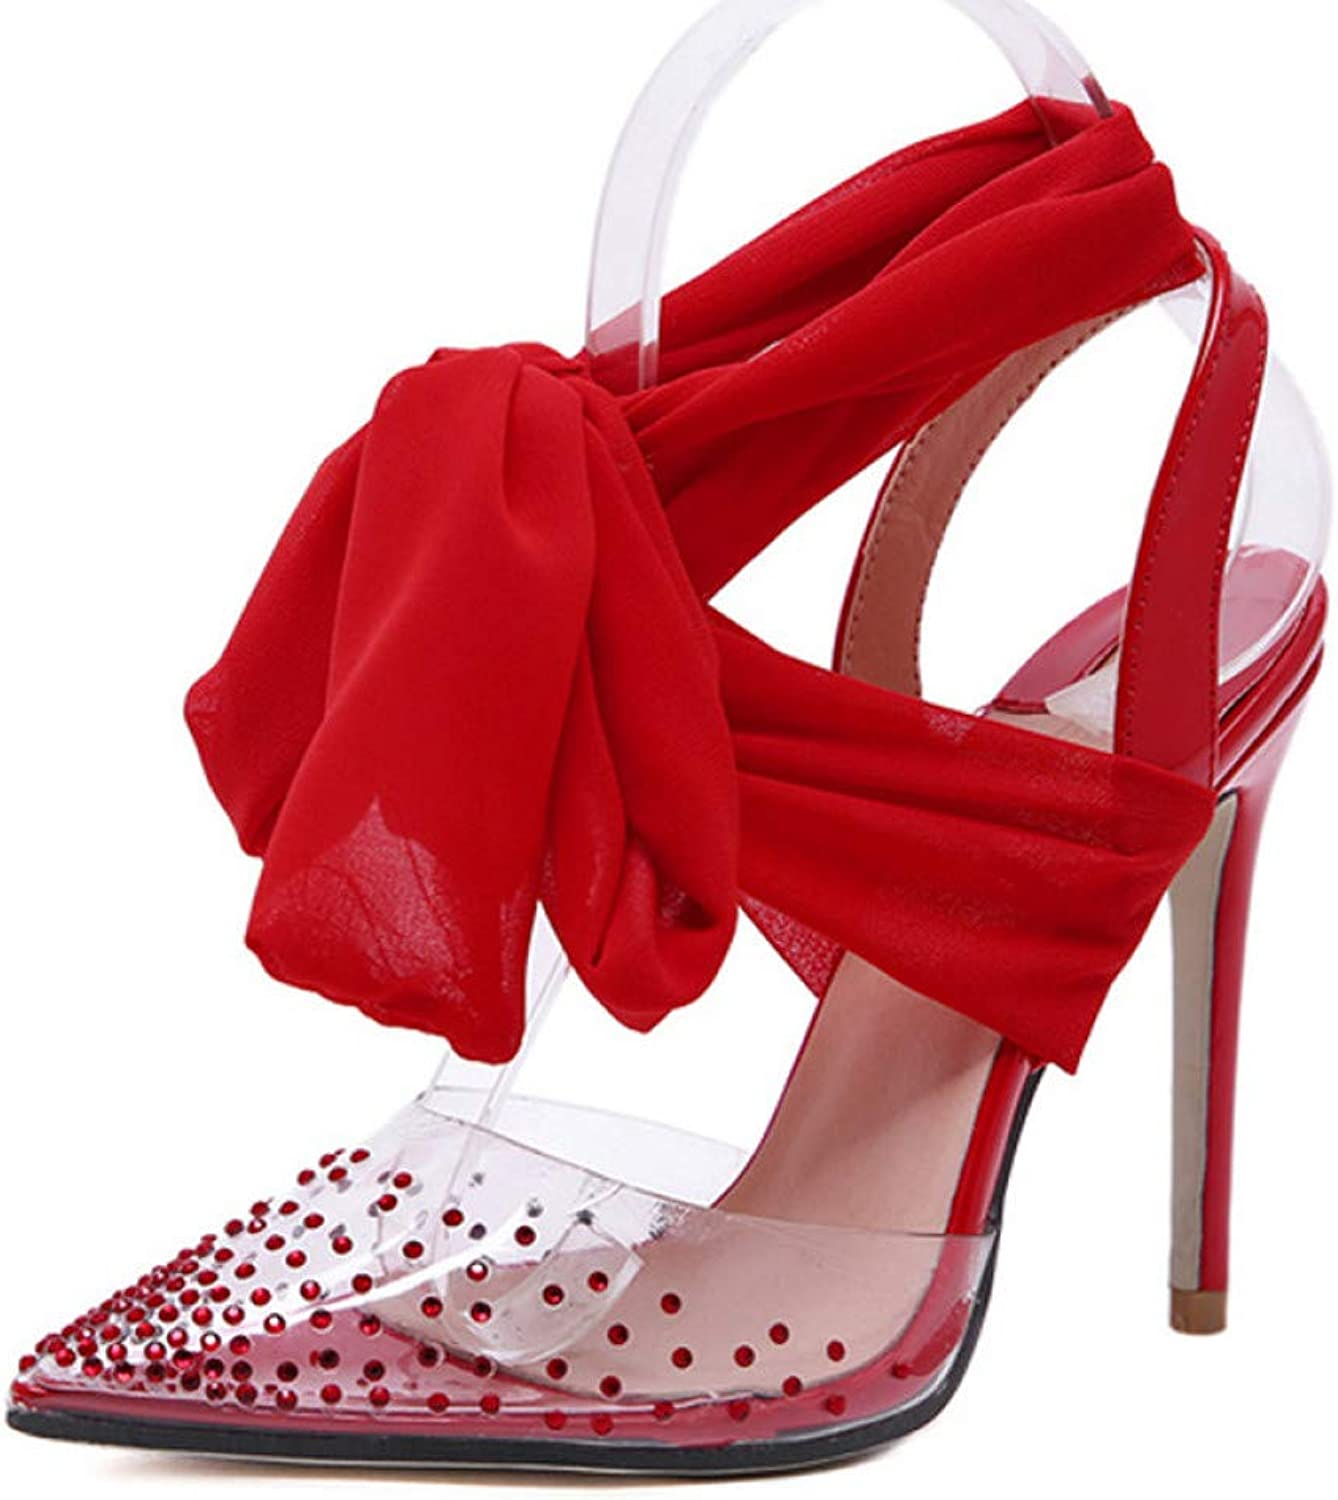 GHIJN High Heels New Women high Heels Sexy Pumps Stiletto Pointed Toe Party Ankle Strappy high Heels Red Black Ladies Wedding shoes